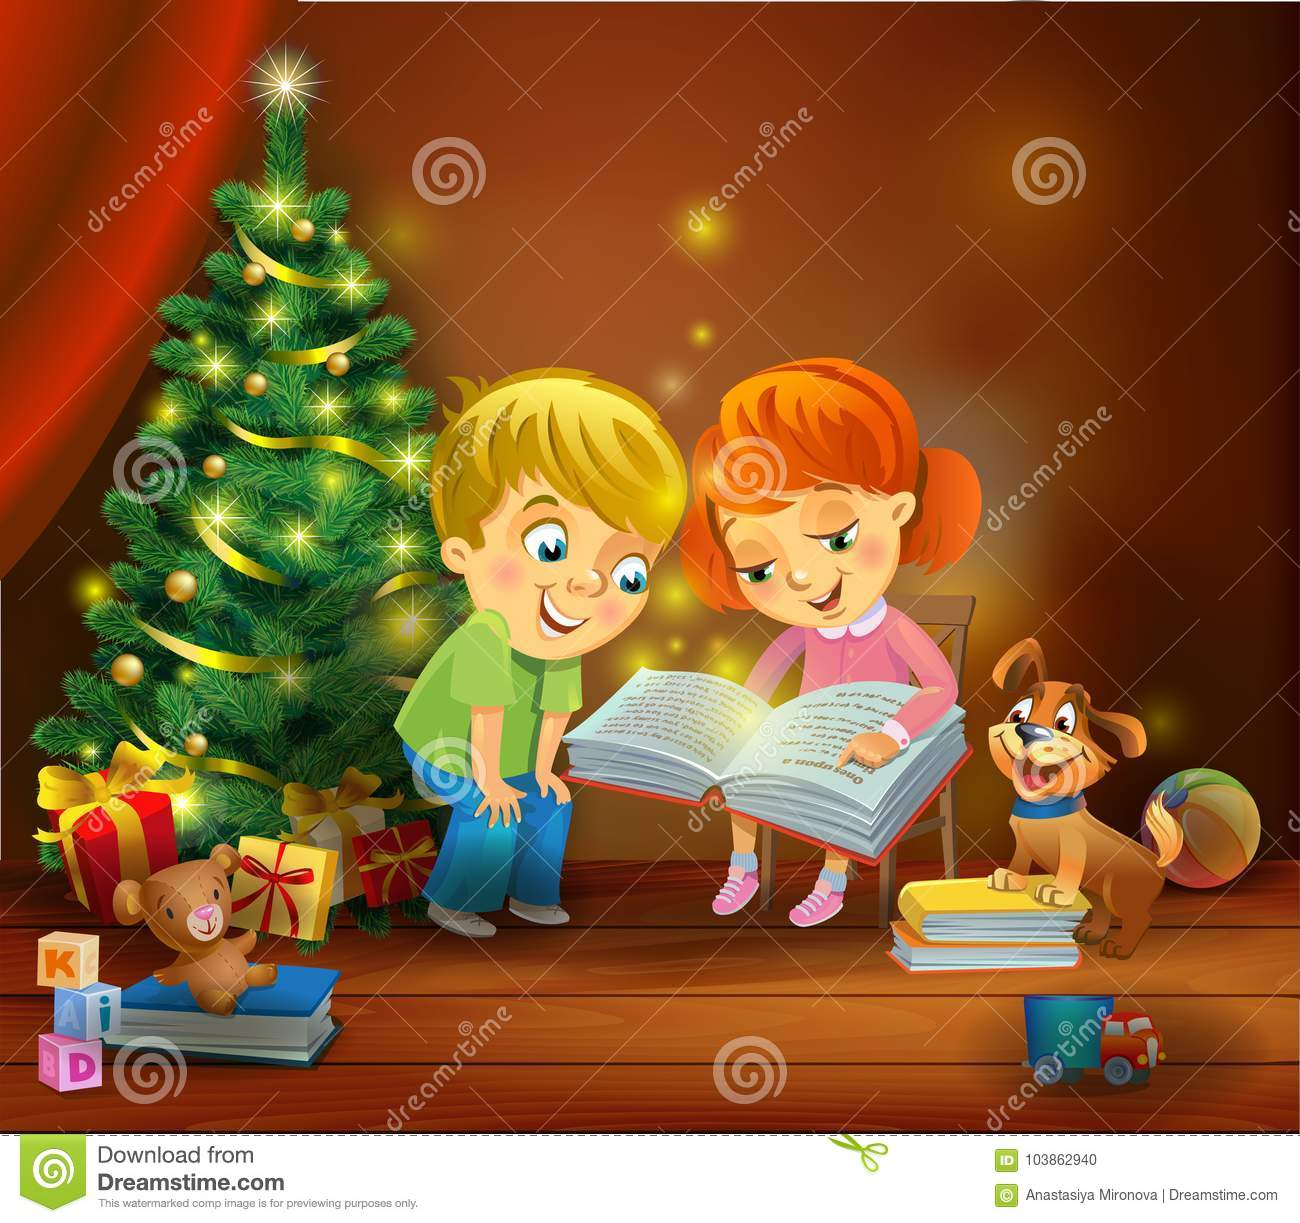 A Christmas Miracle.Christmas Miracle Kids Reading The Book Beside A Christmas